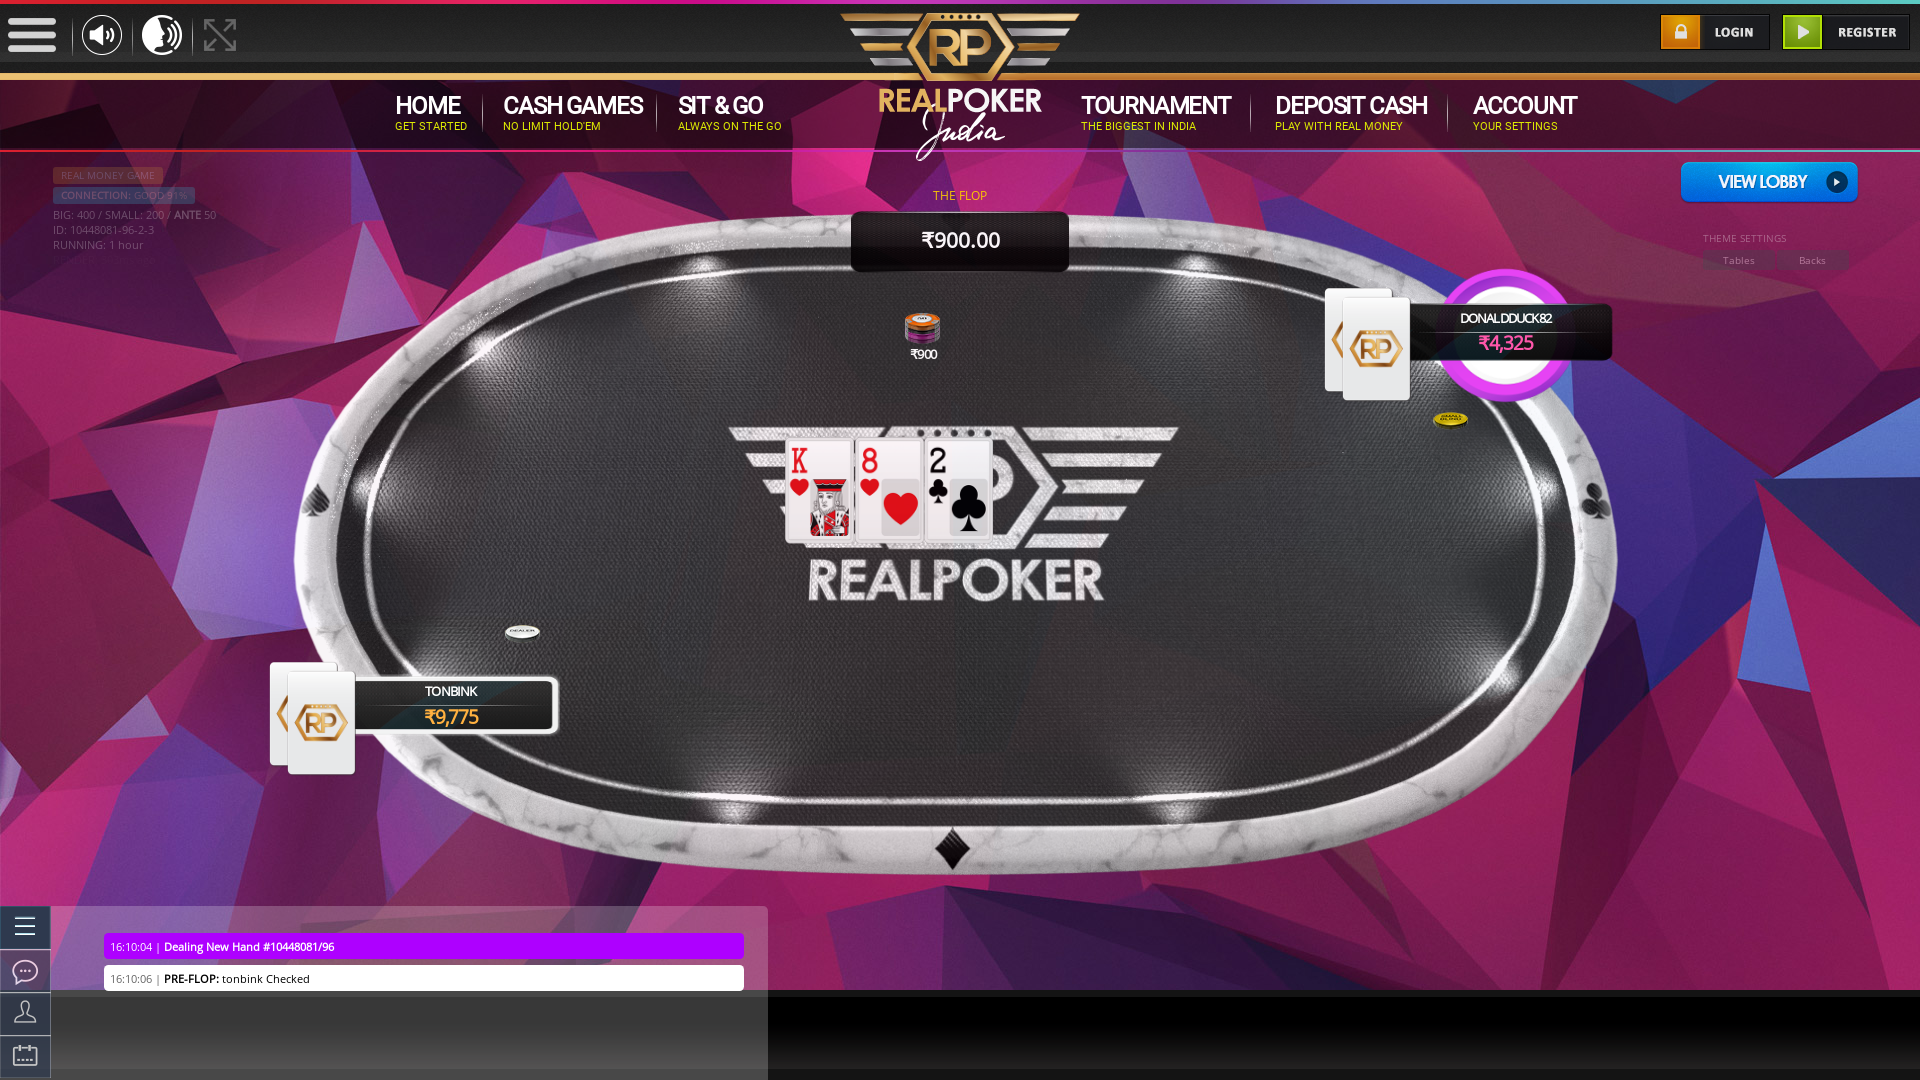 Real poker 10 player table in the 6 match